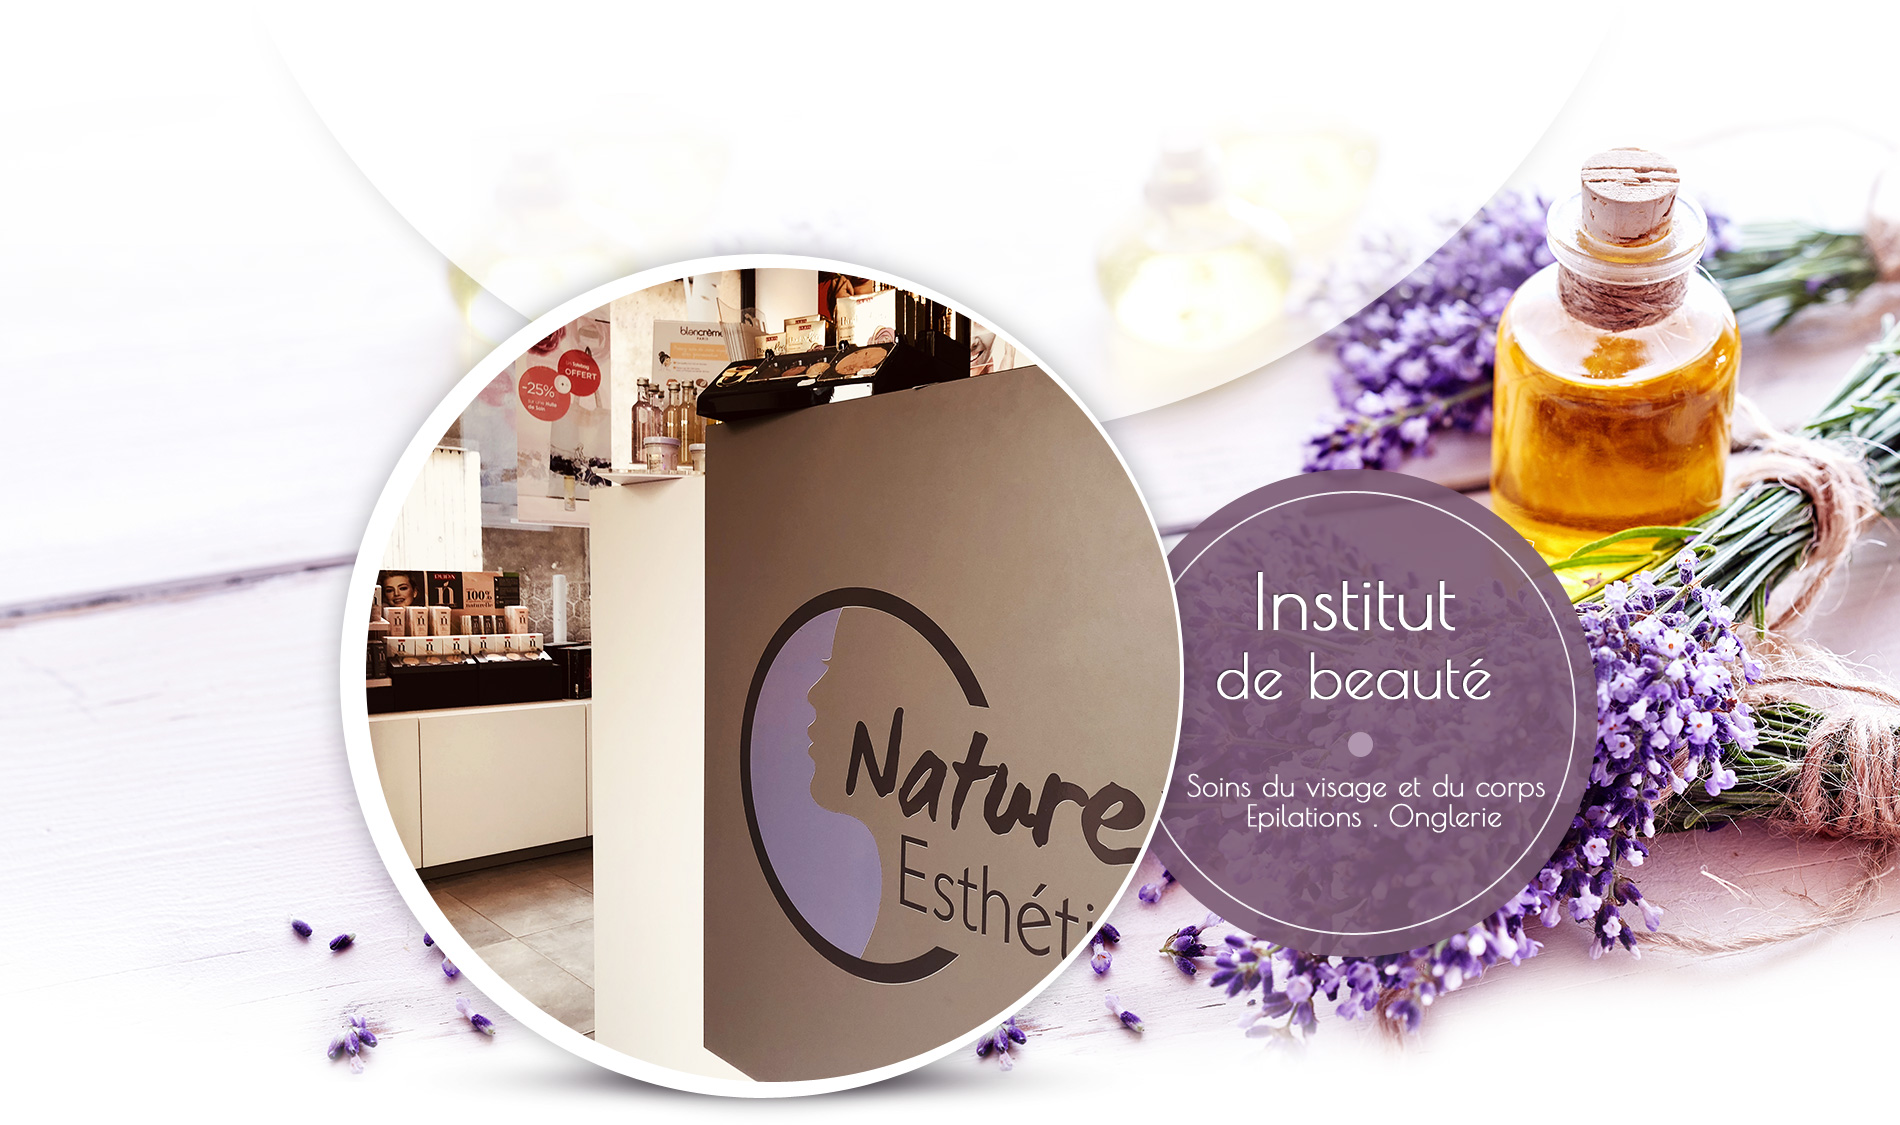 NATURE ESTHETIQUE